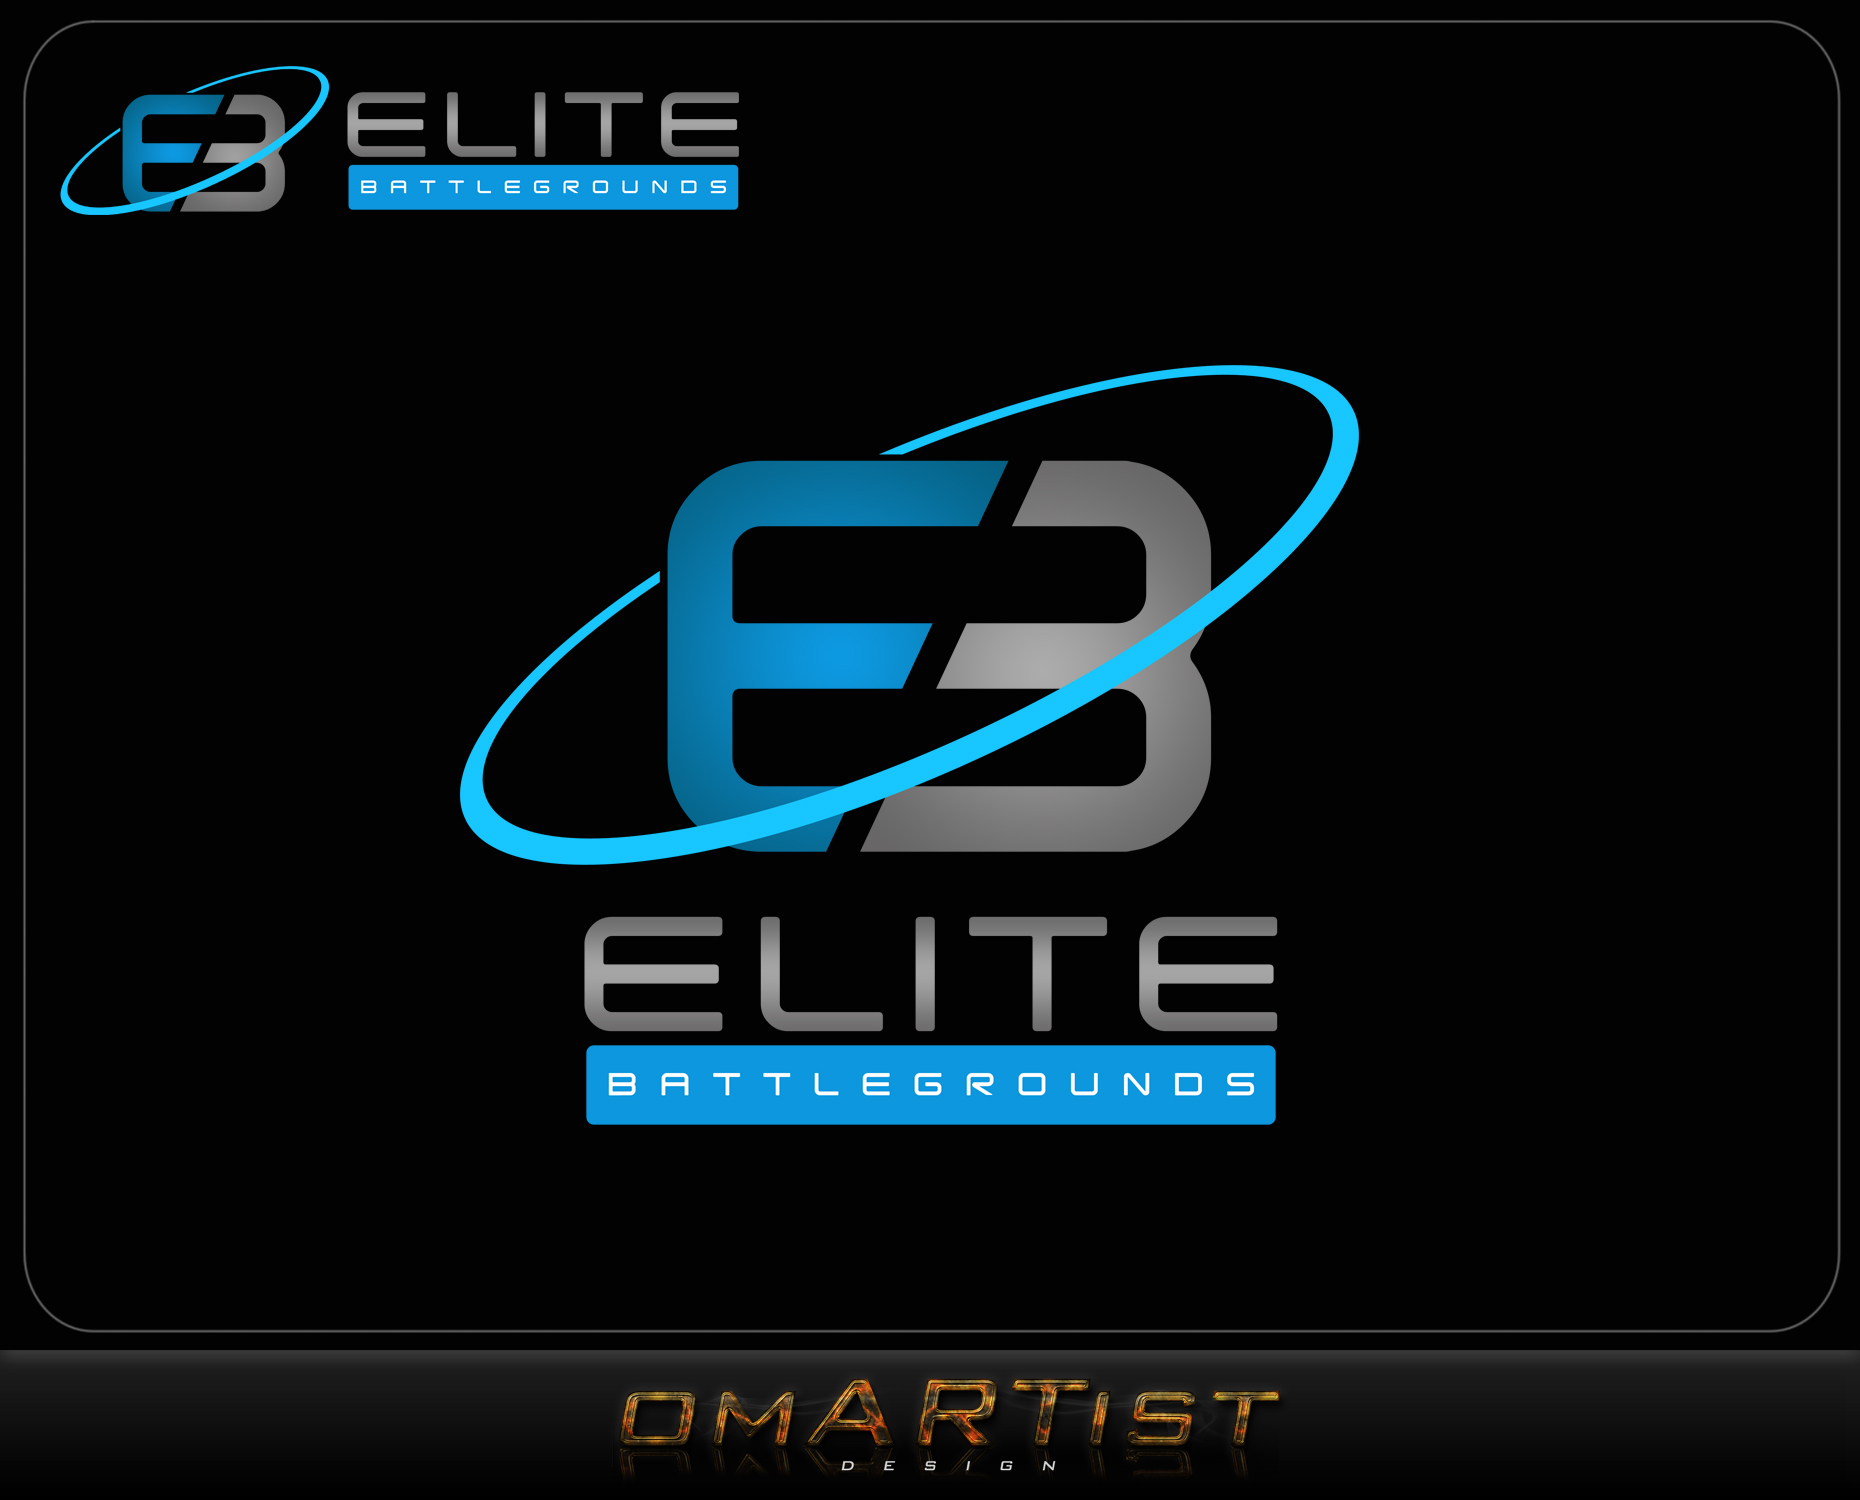 Logo Design by omARTist - Entry No. 97 in the Logo Design Contest Creative Logo Design for Elite Battlegrounds.